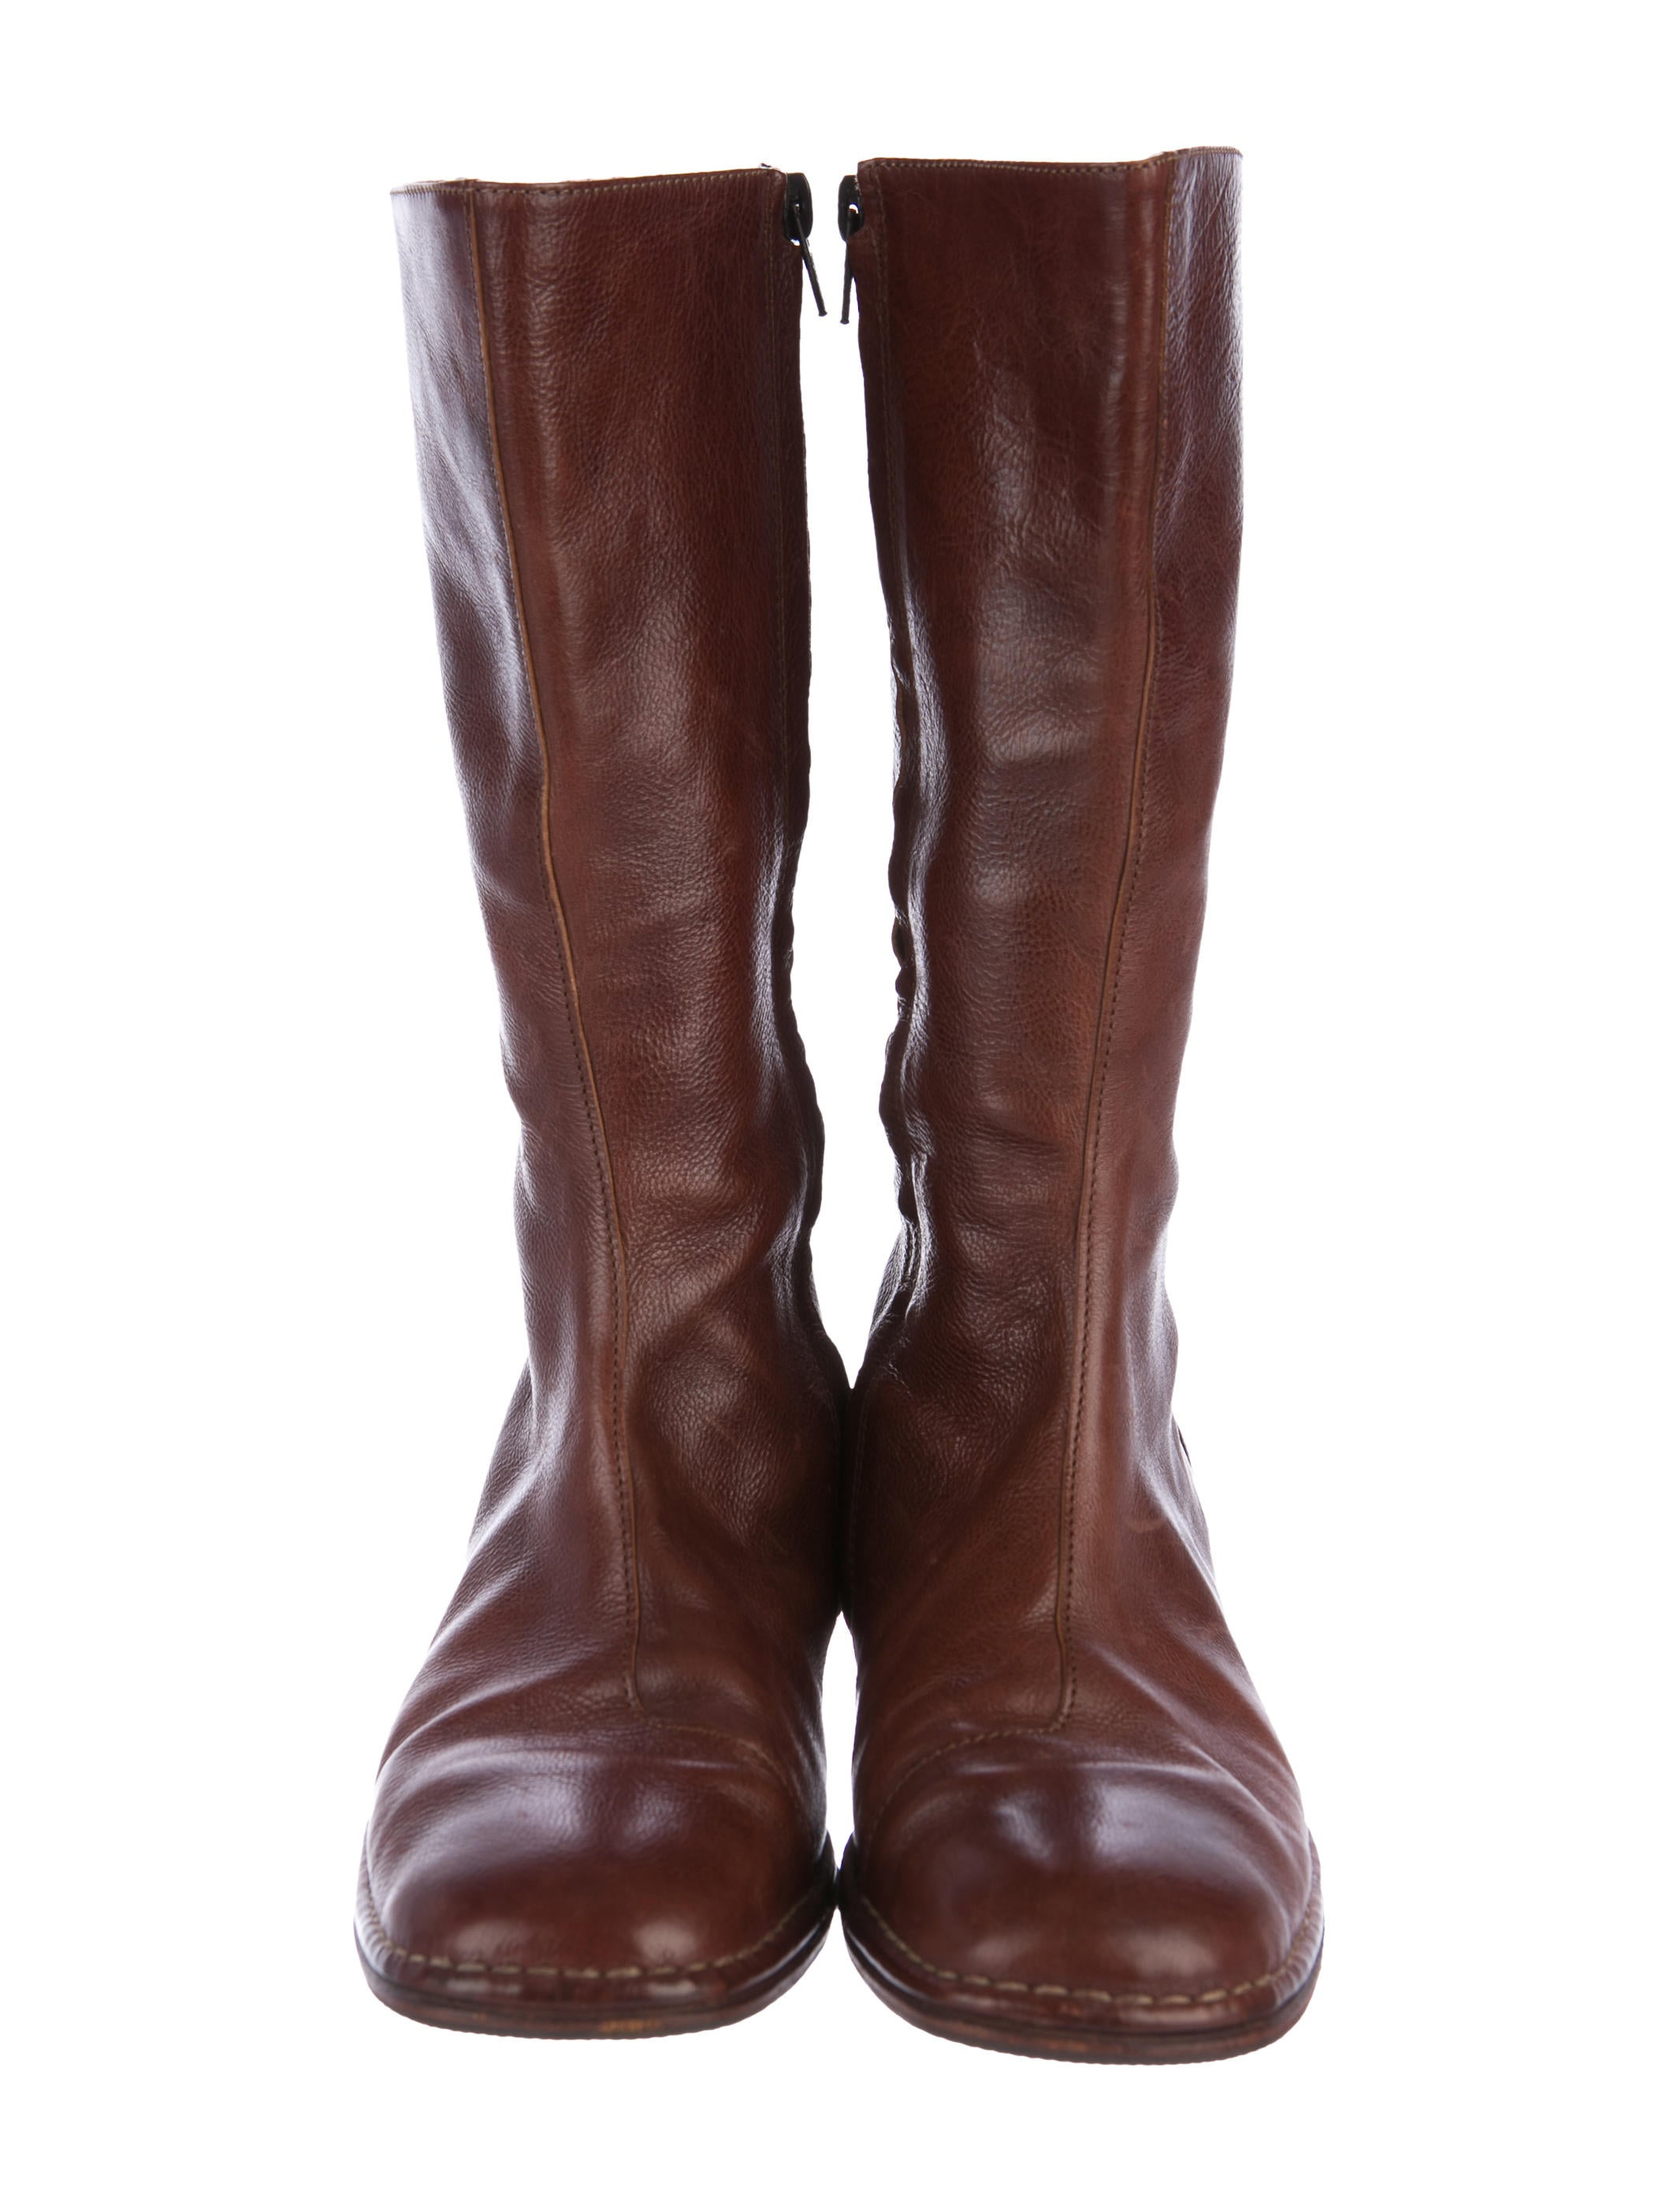 henry beguelin leather mid calf boots shoes hen22004